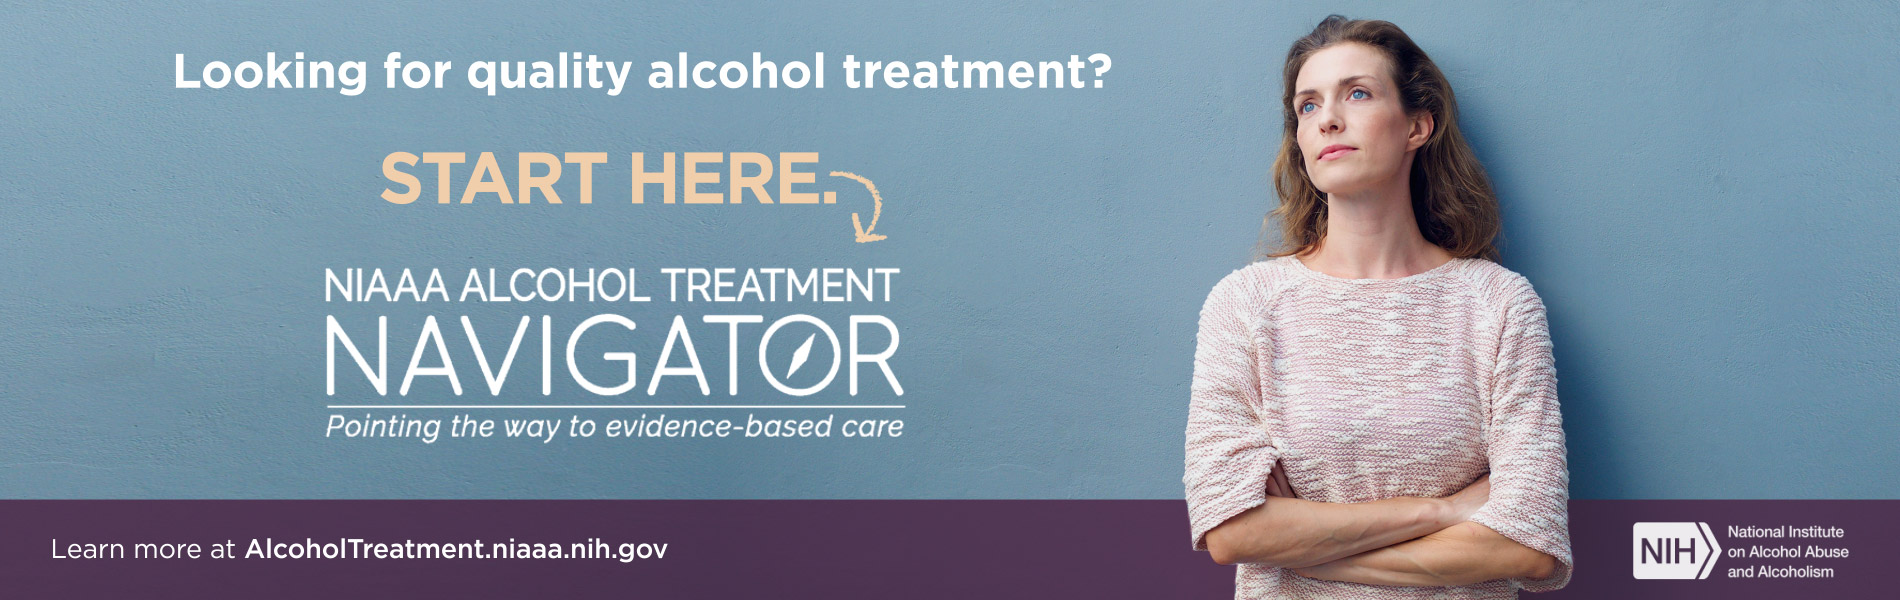 Alcohol Treatment Navigator Pointing the way to evidence based care